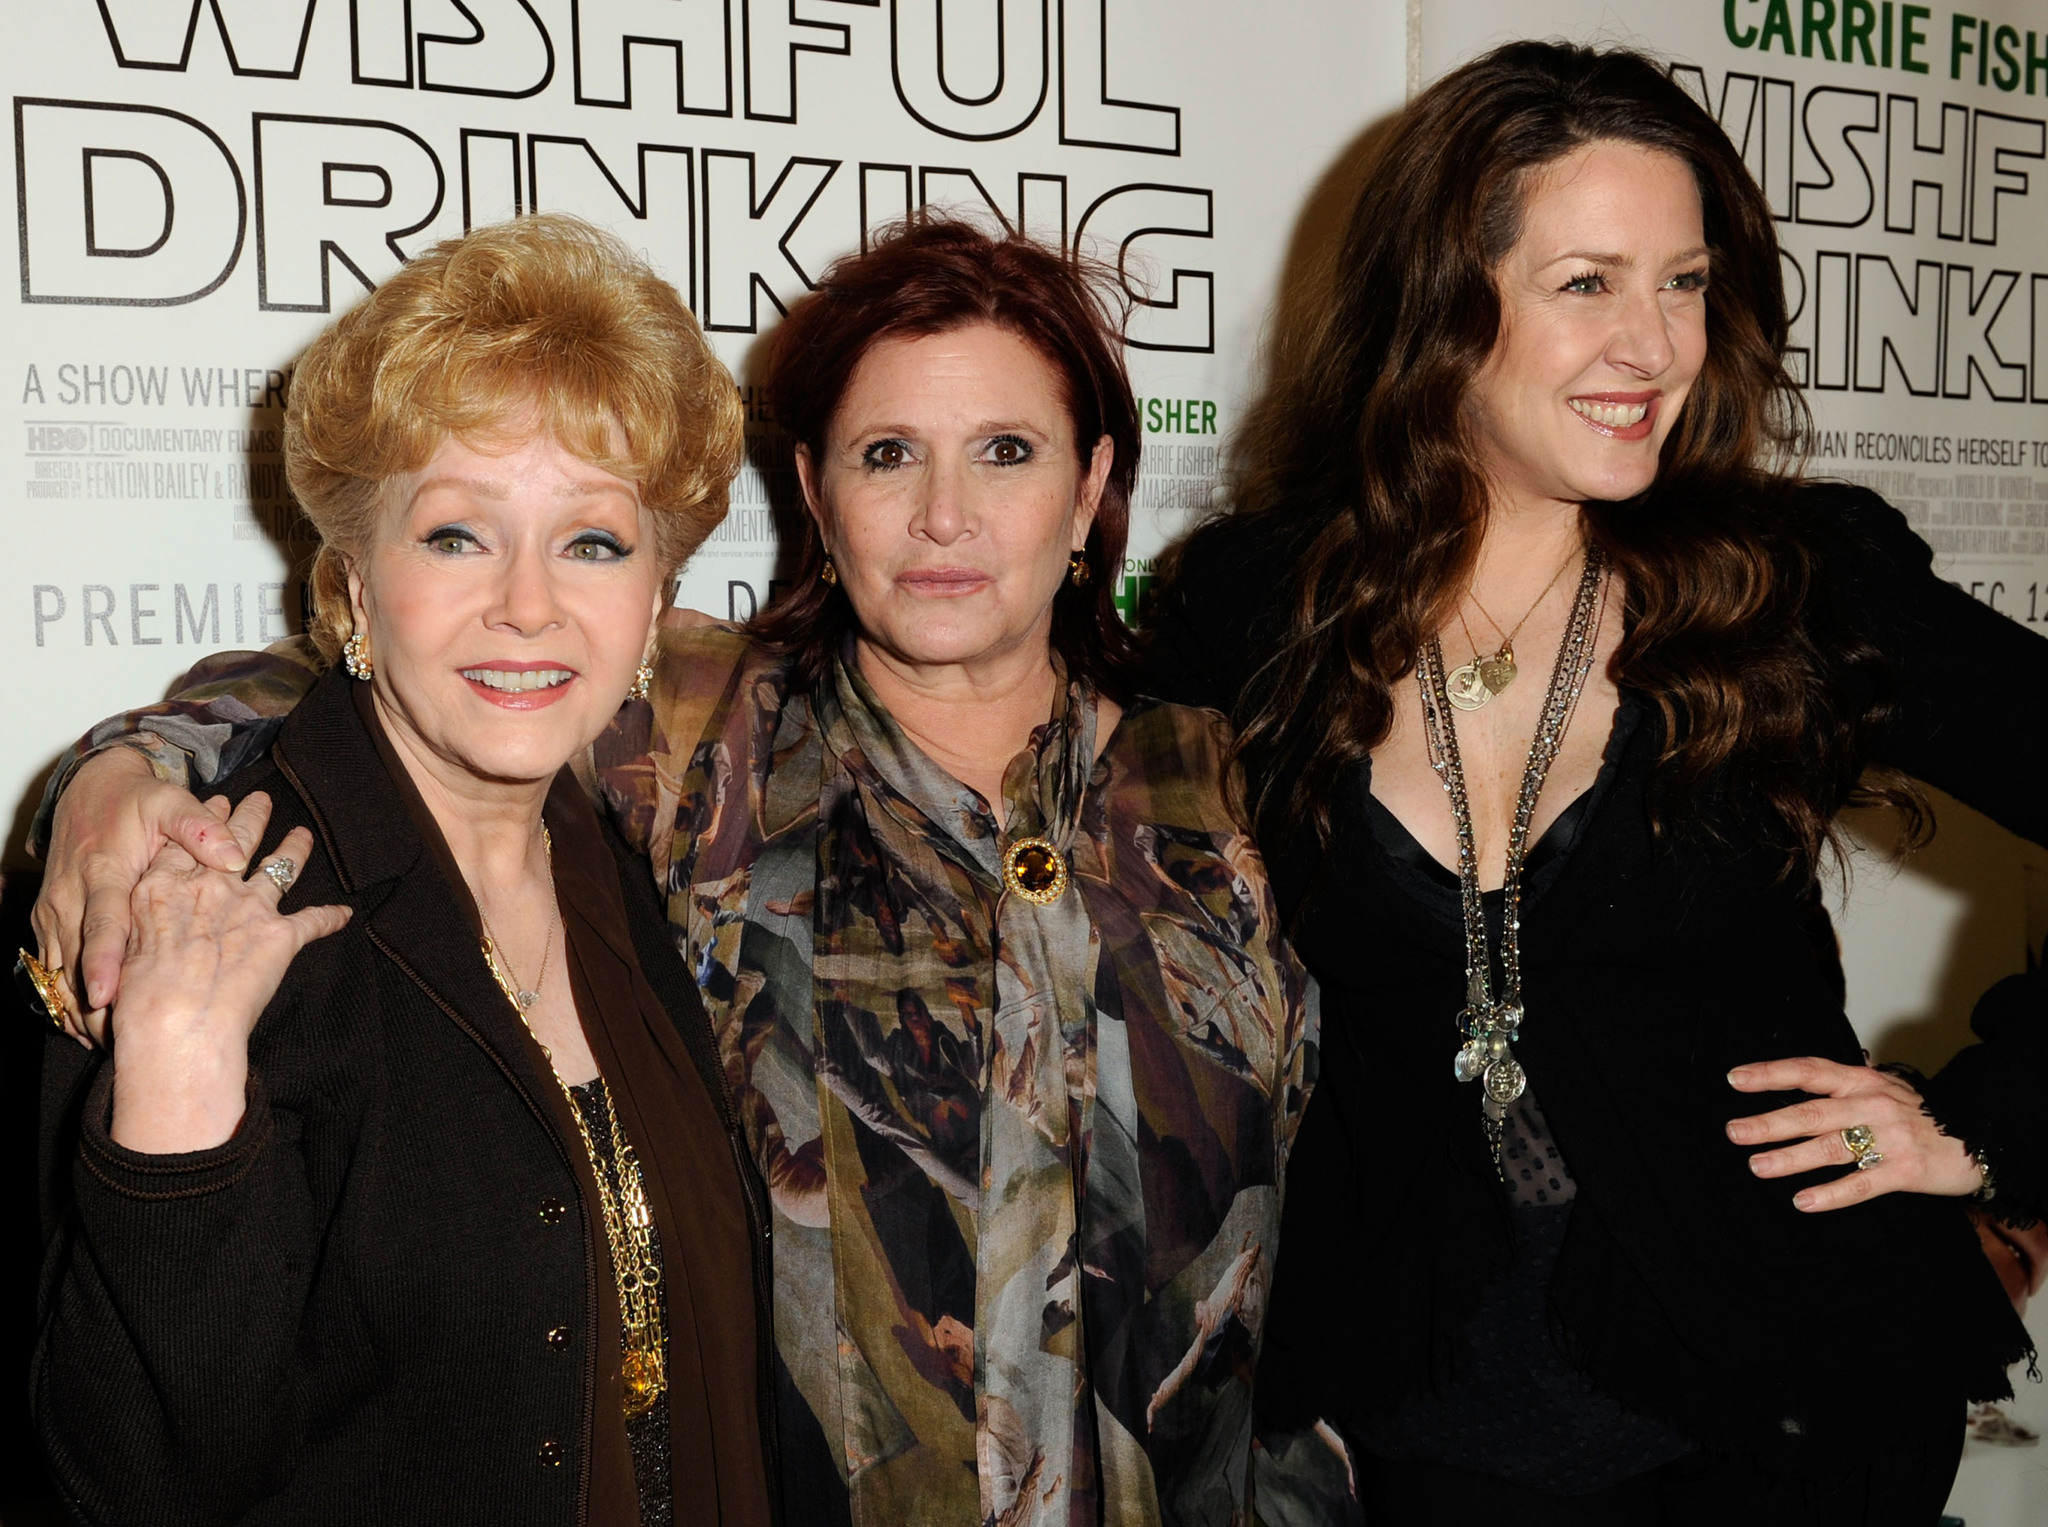 Carrie Fisher, Debbie Reynolds, and Joely Fisher at an event for Carrie Fisher: Wishful Drinking (2010)